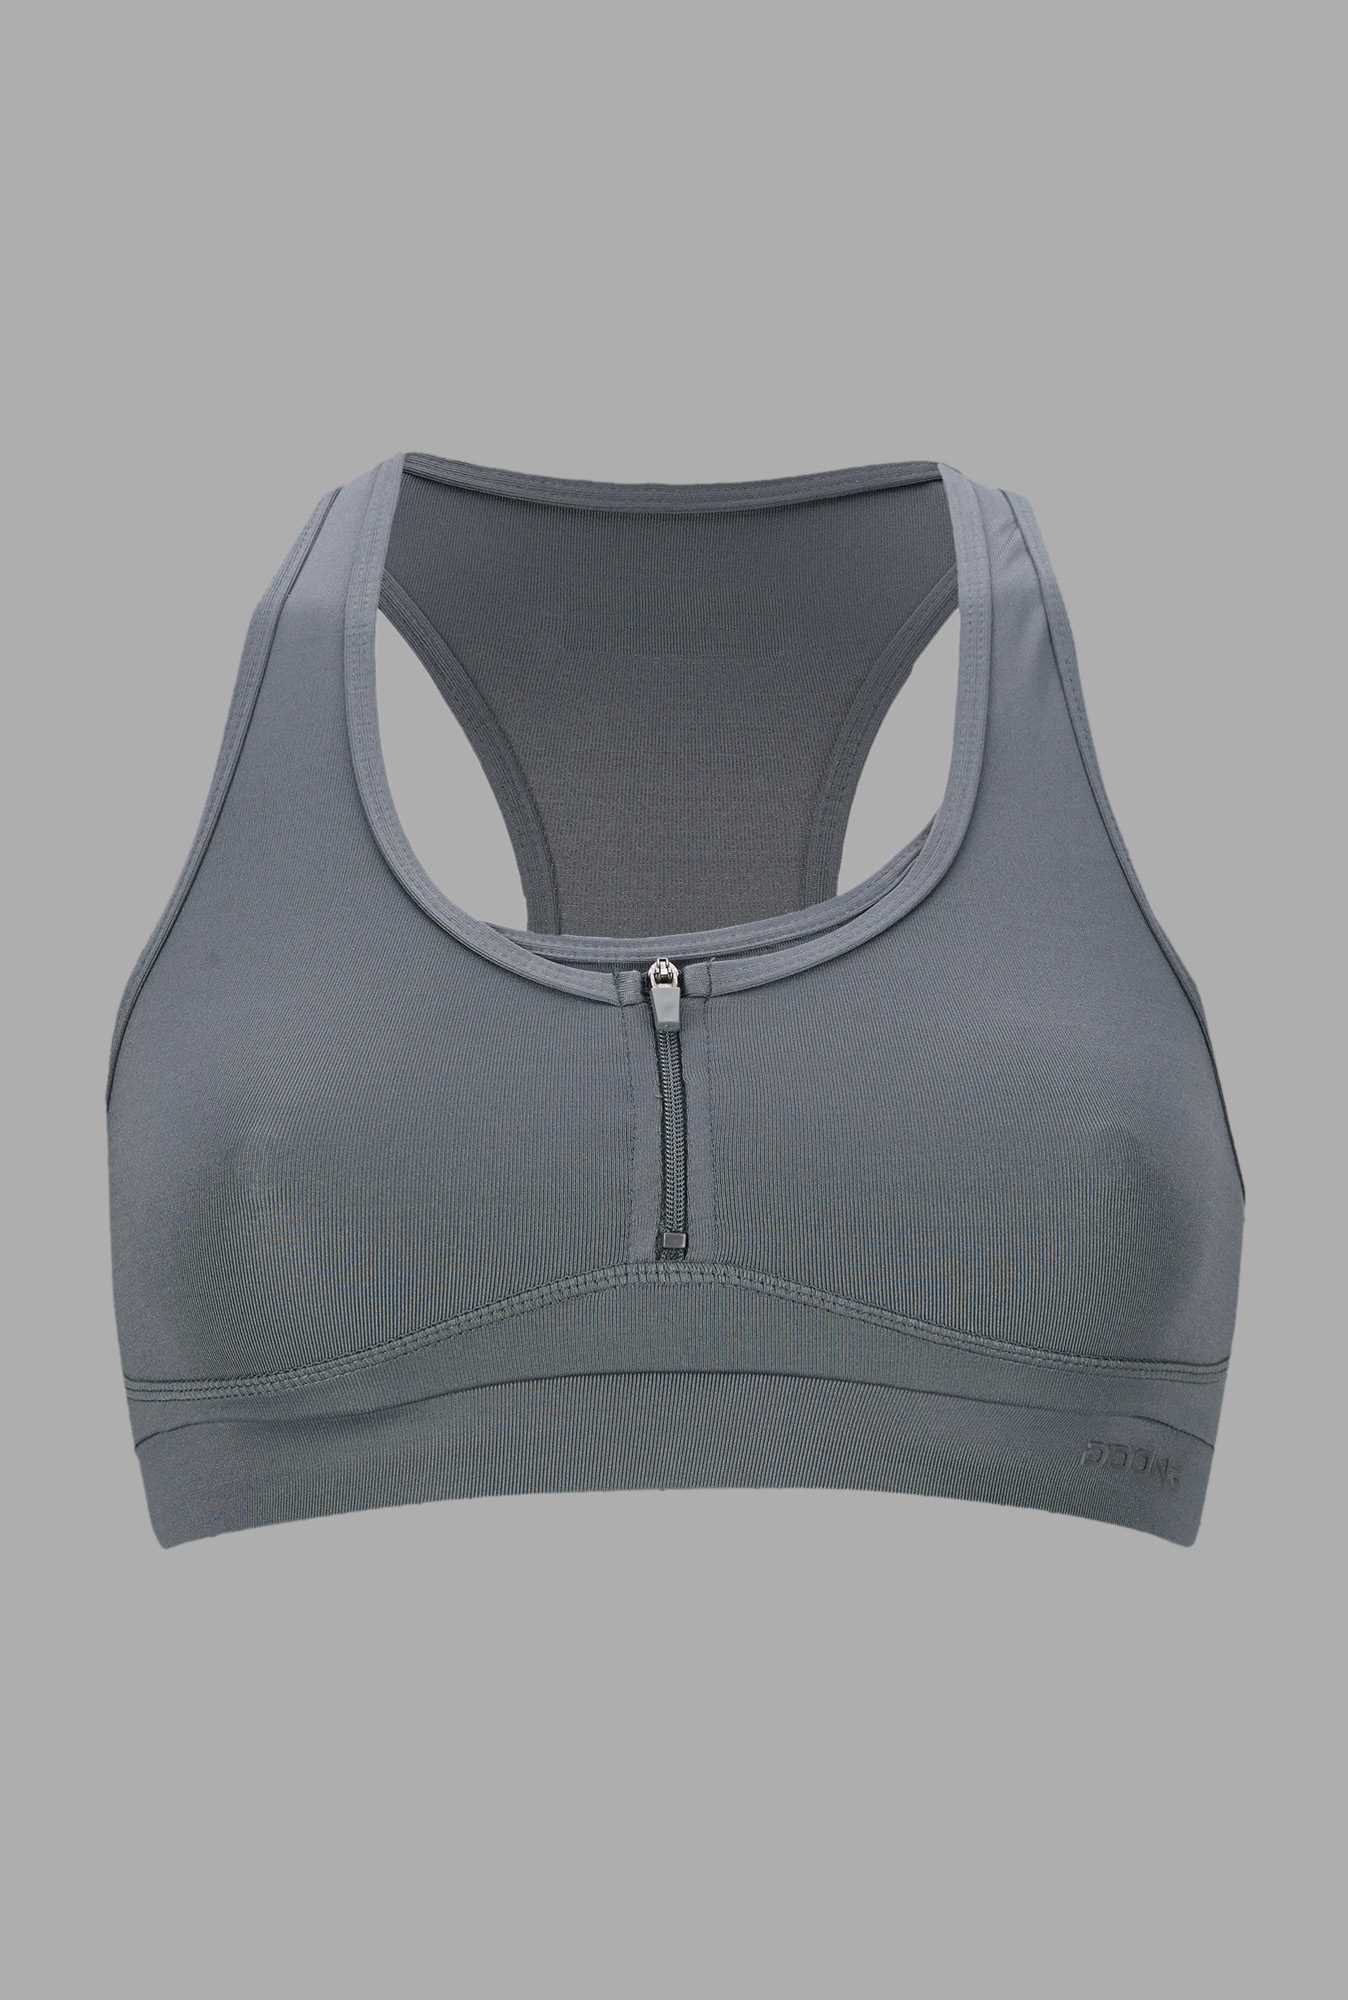 Doone Grey Training Sports Top